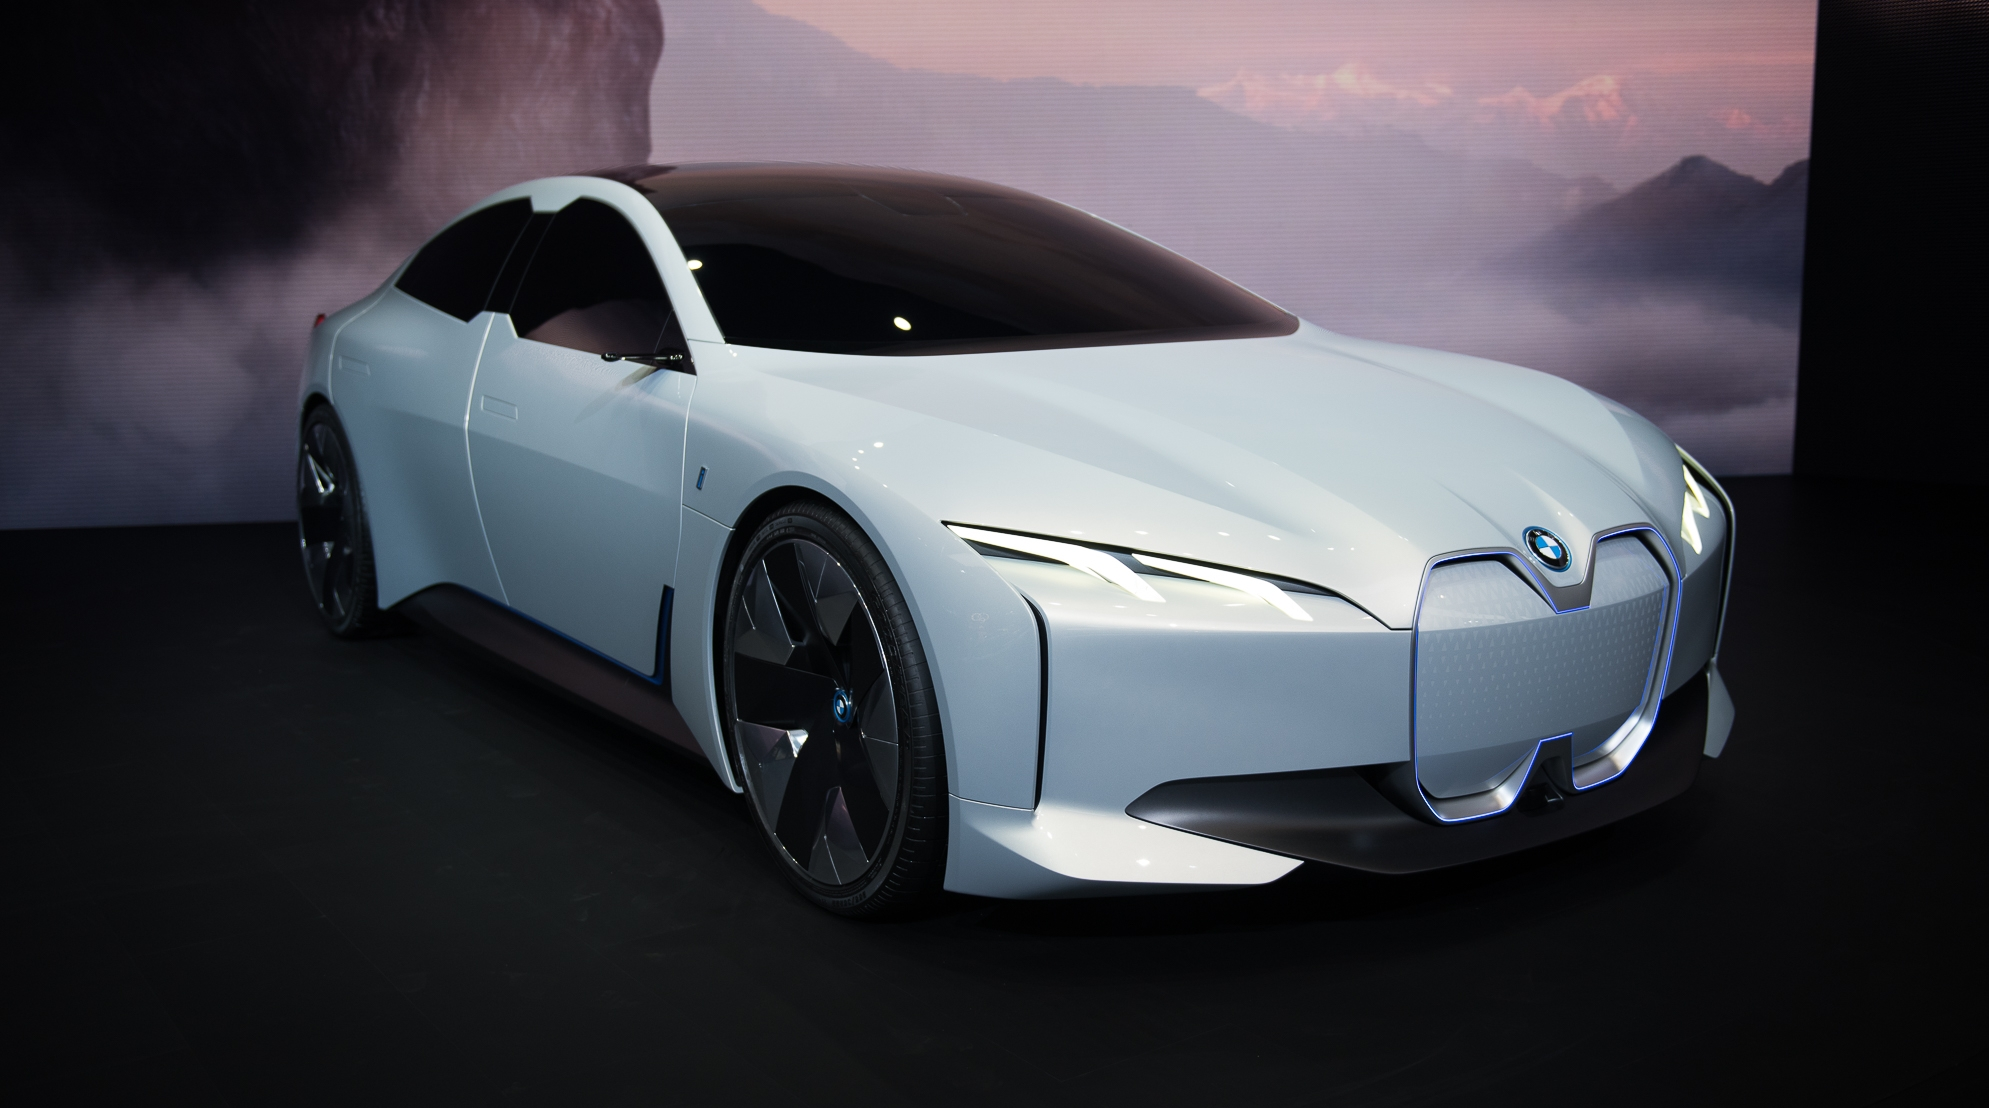 Bmw I8 Top Speed >> BMW's Tesla-Beating I4 Could Have Between 340 And 435 Miles Of Range | Top Speed